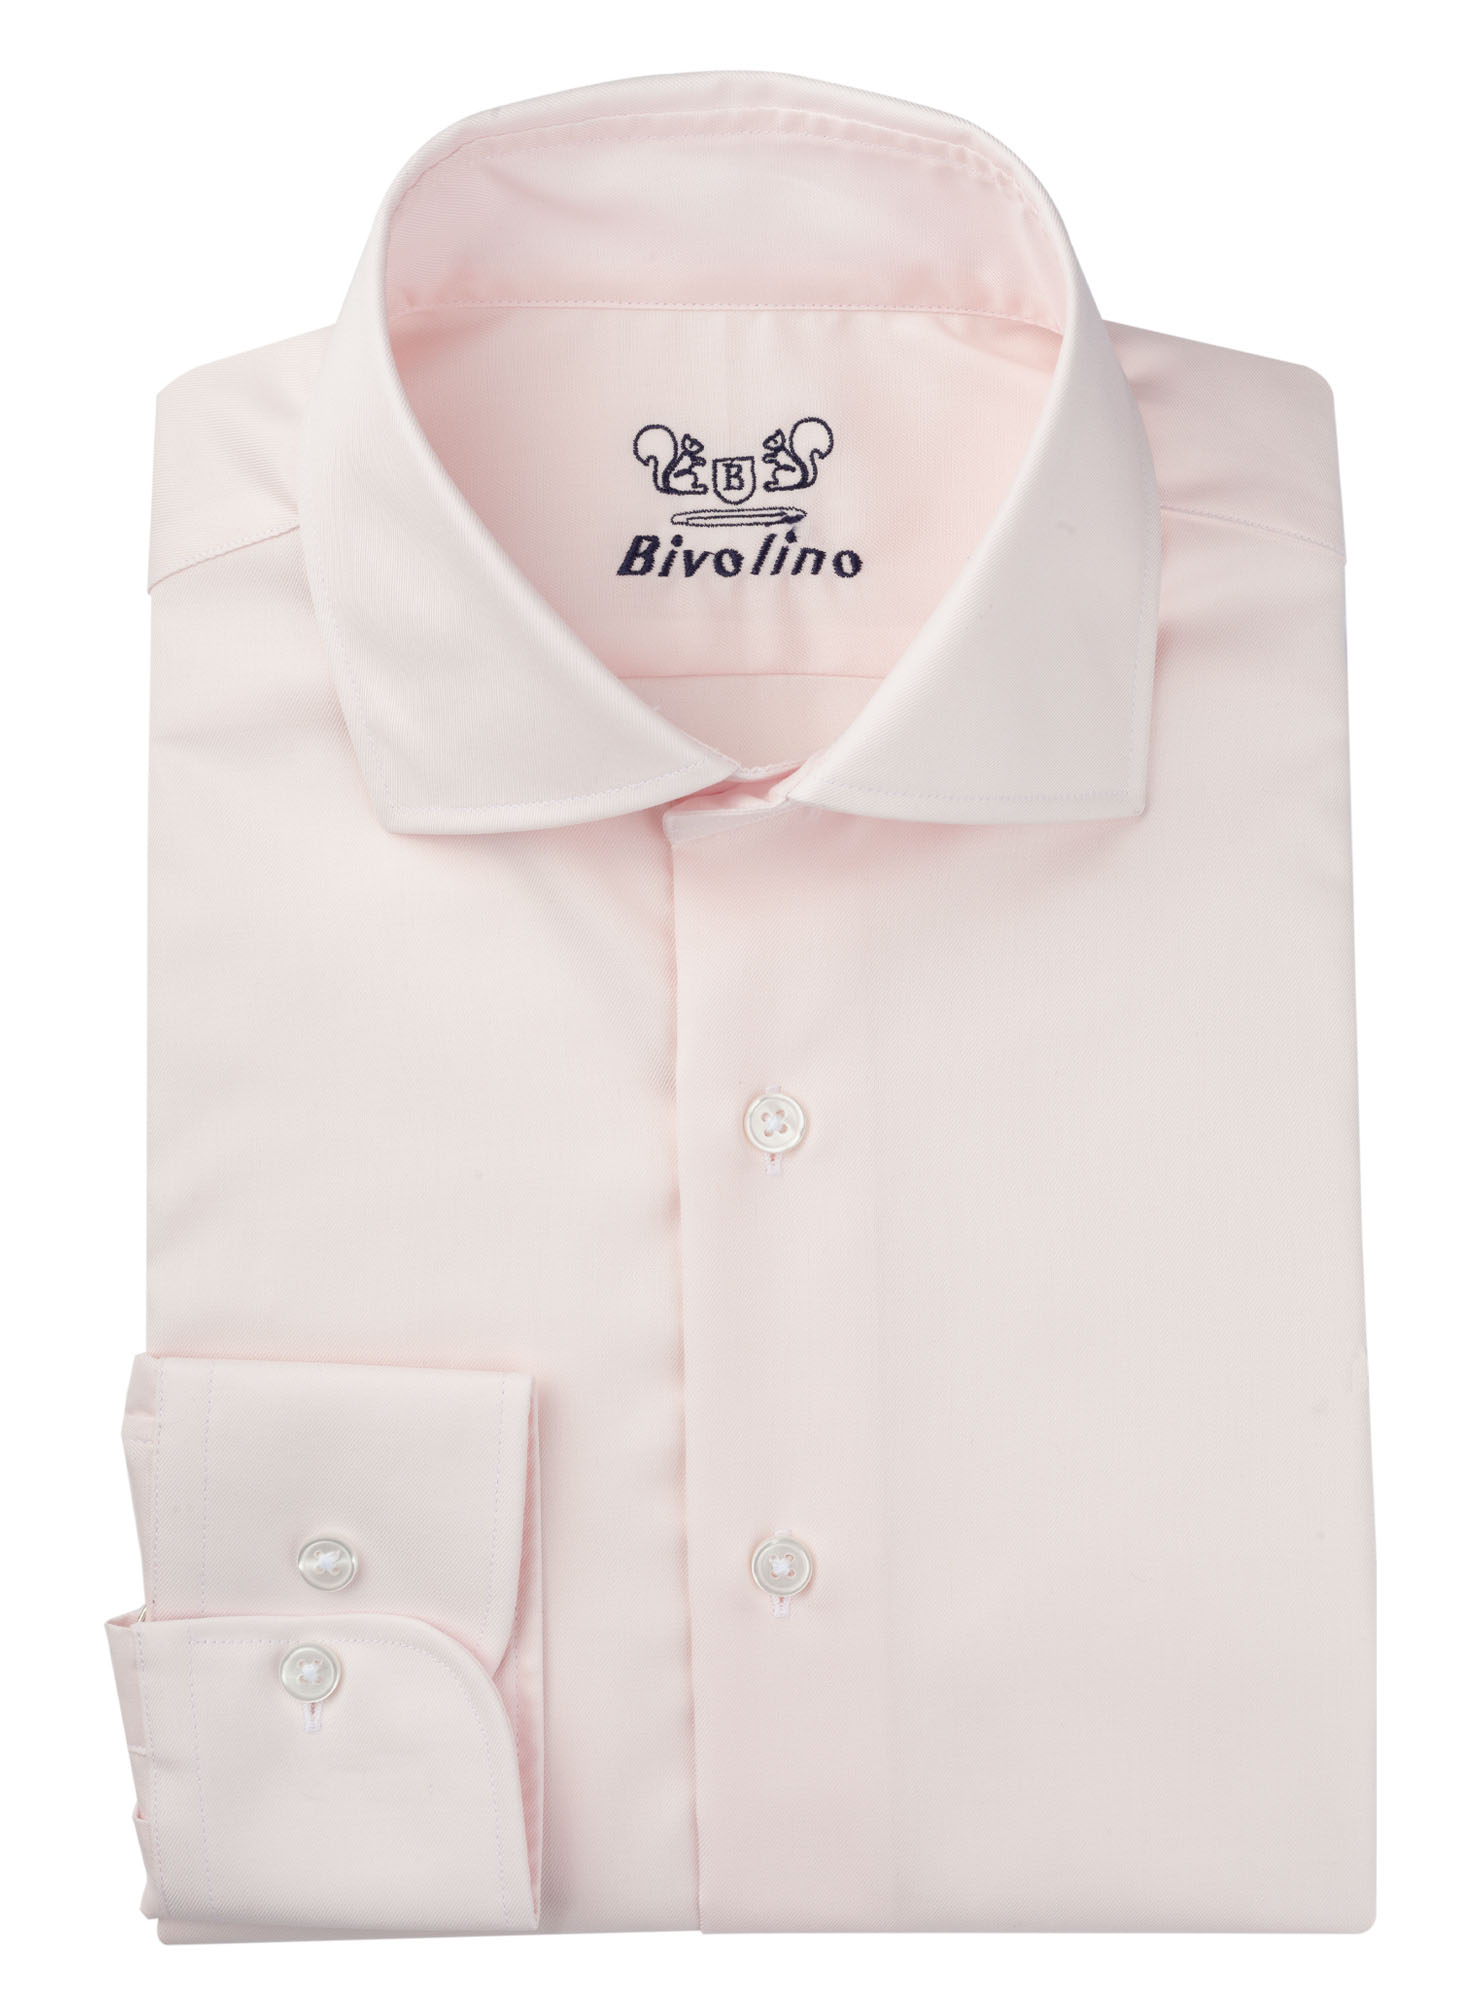 ANDRIA  - Men's Shirt Cotton anti-stains and repellent - INDUO 3